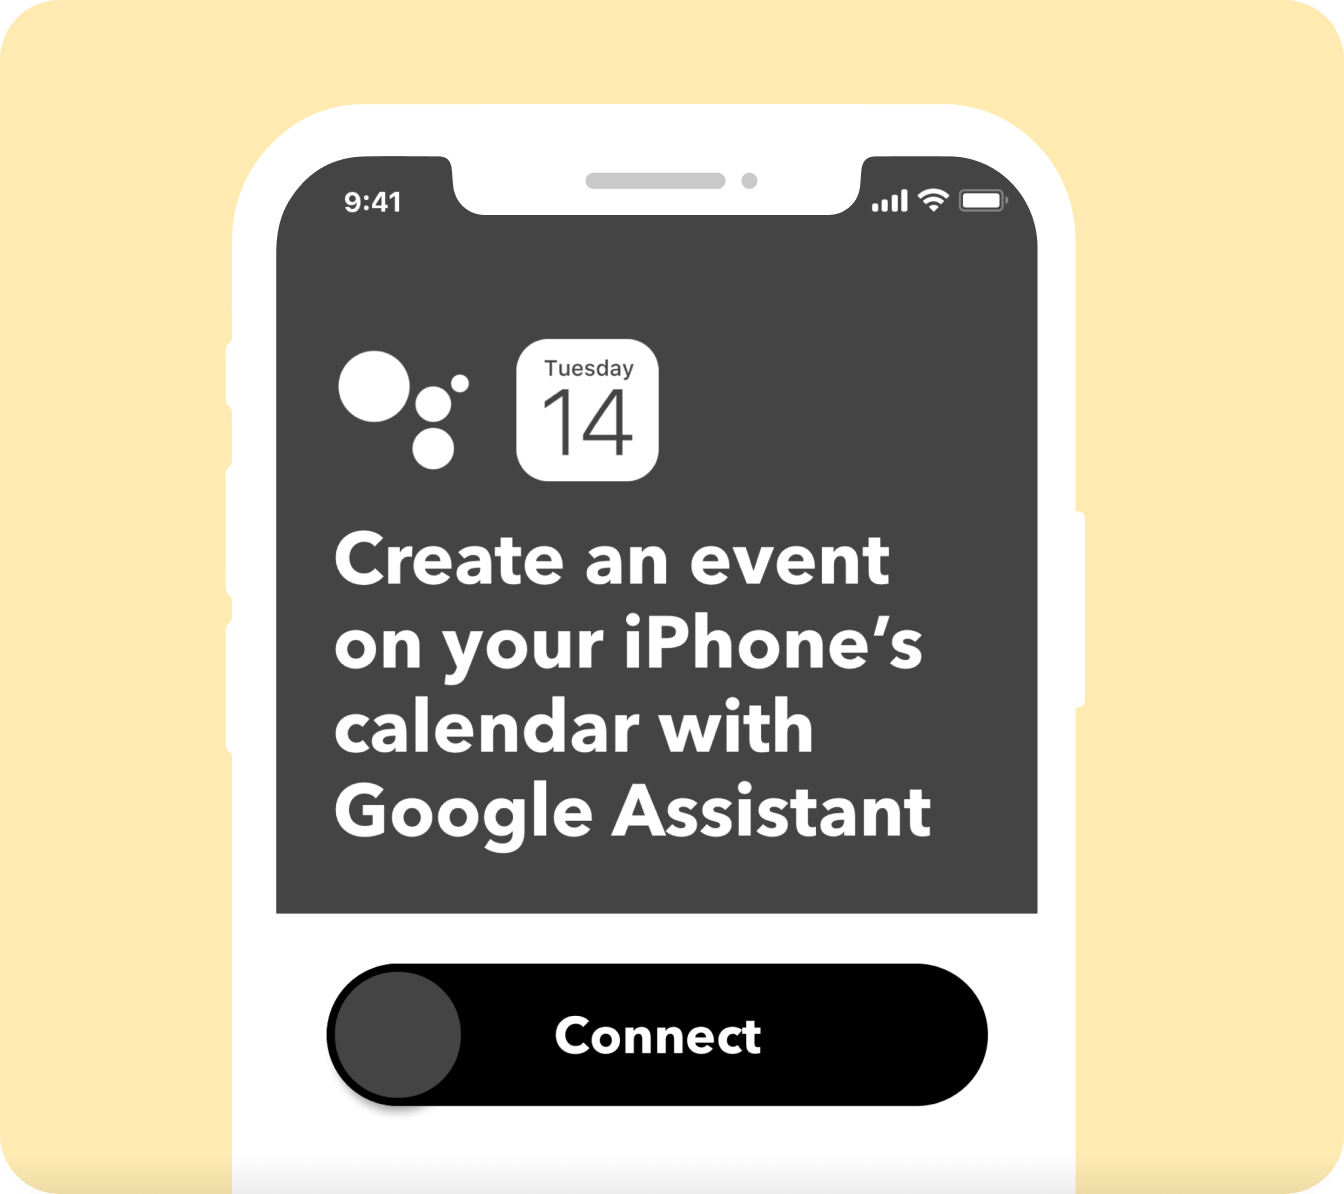 iPhone: Create an event on your iPhone's calendar with Google Assistant